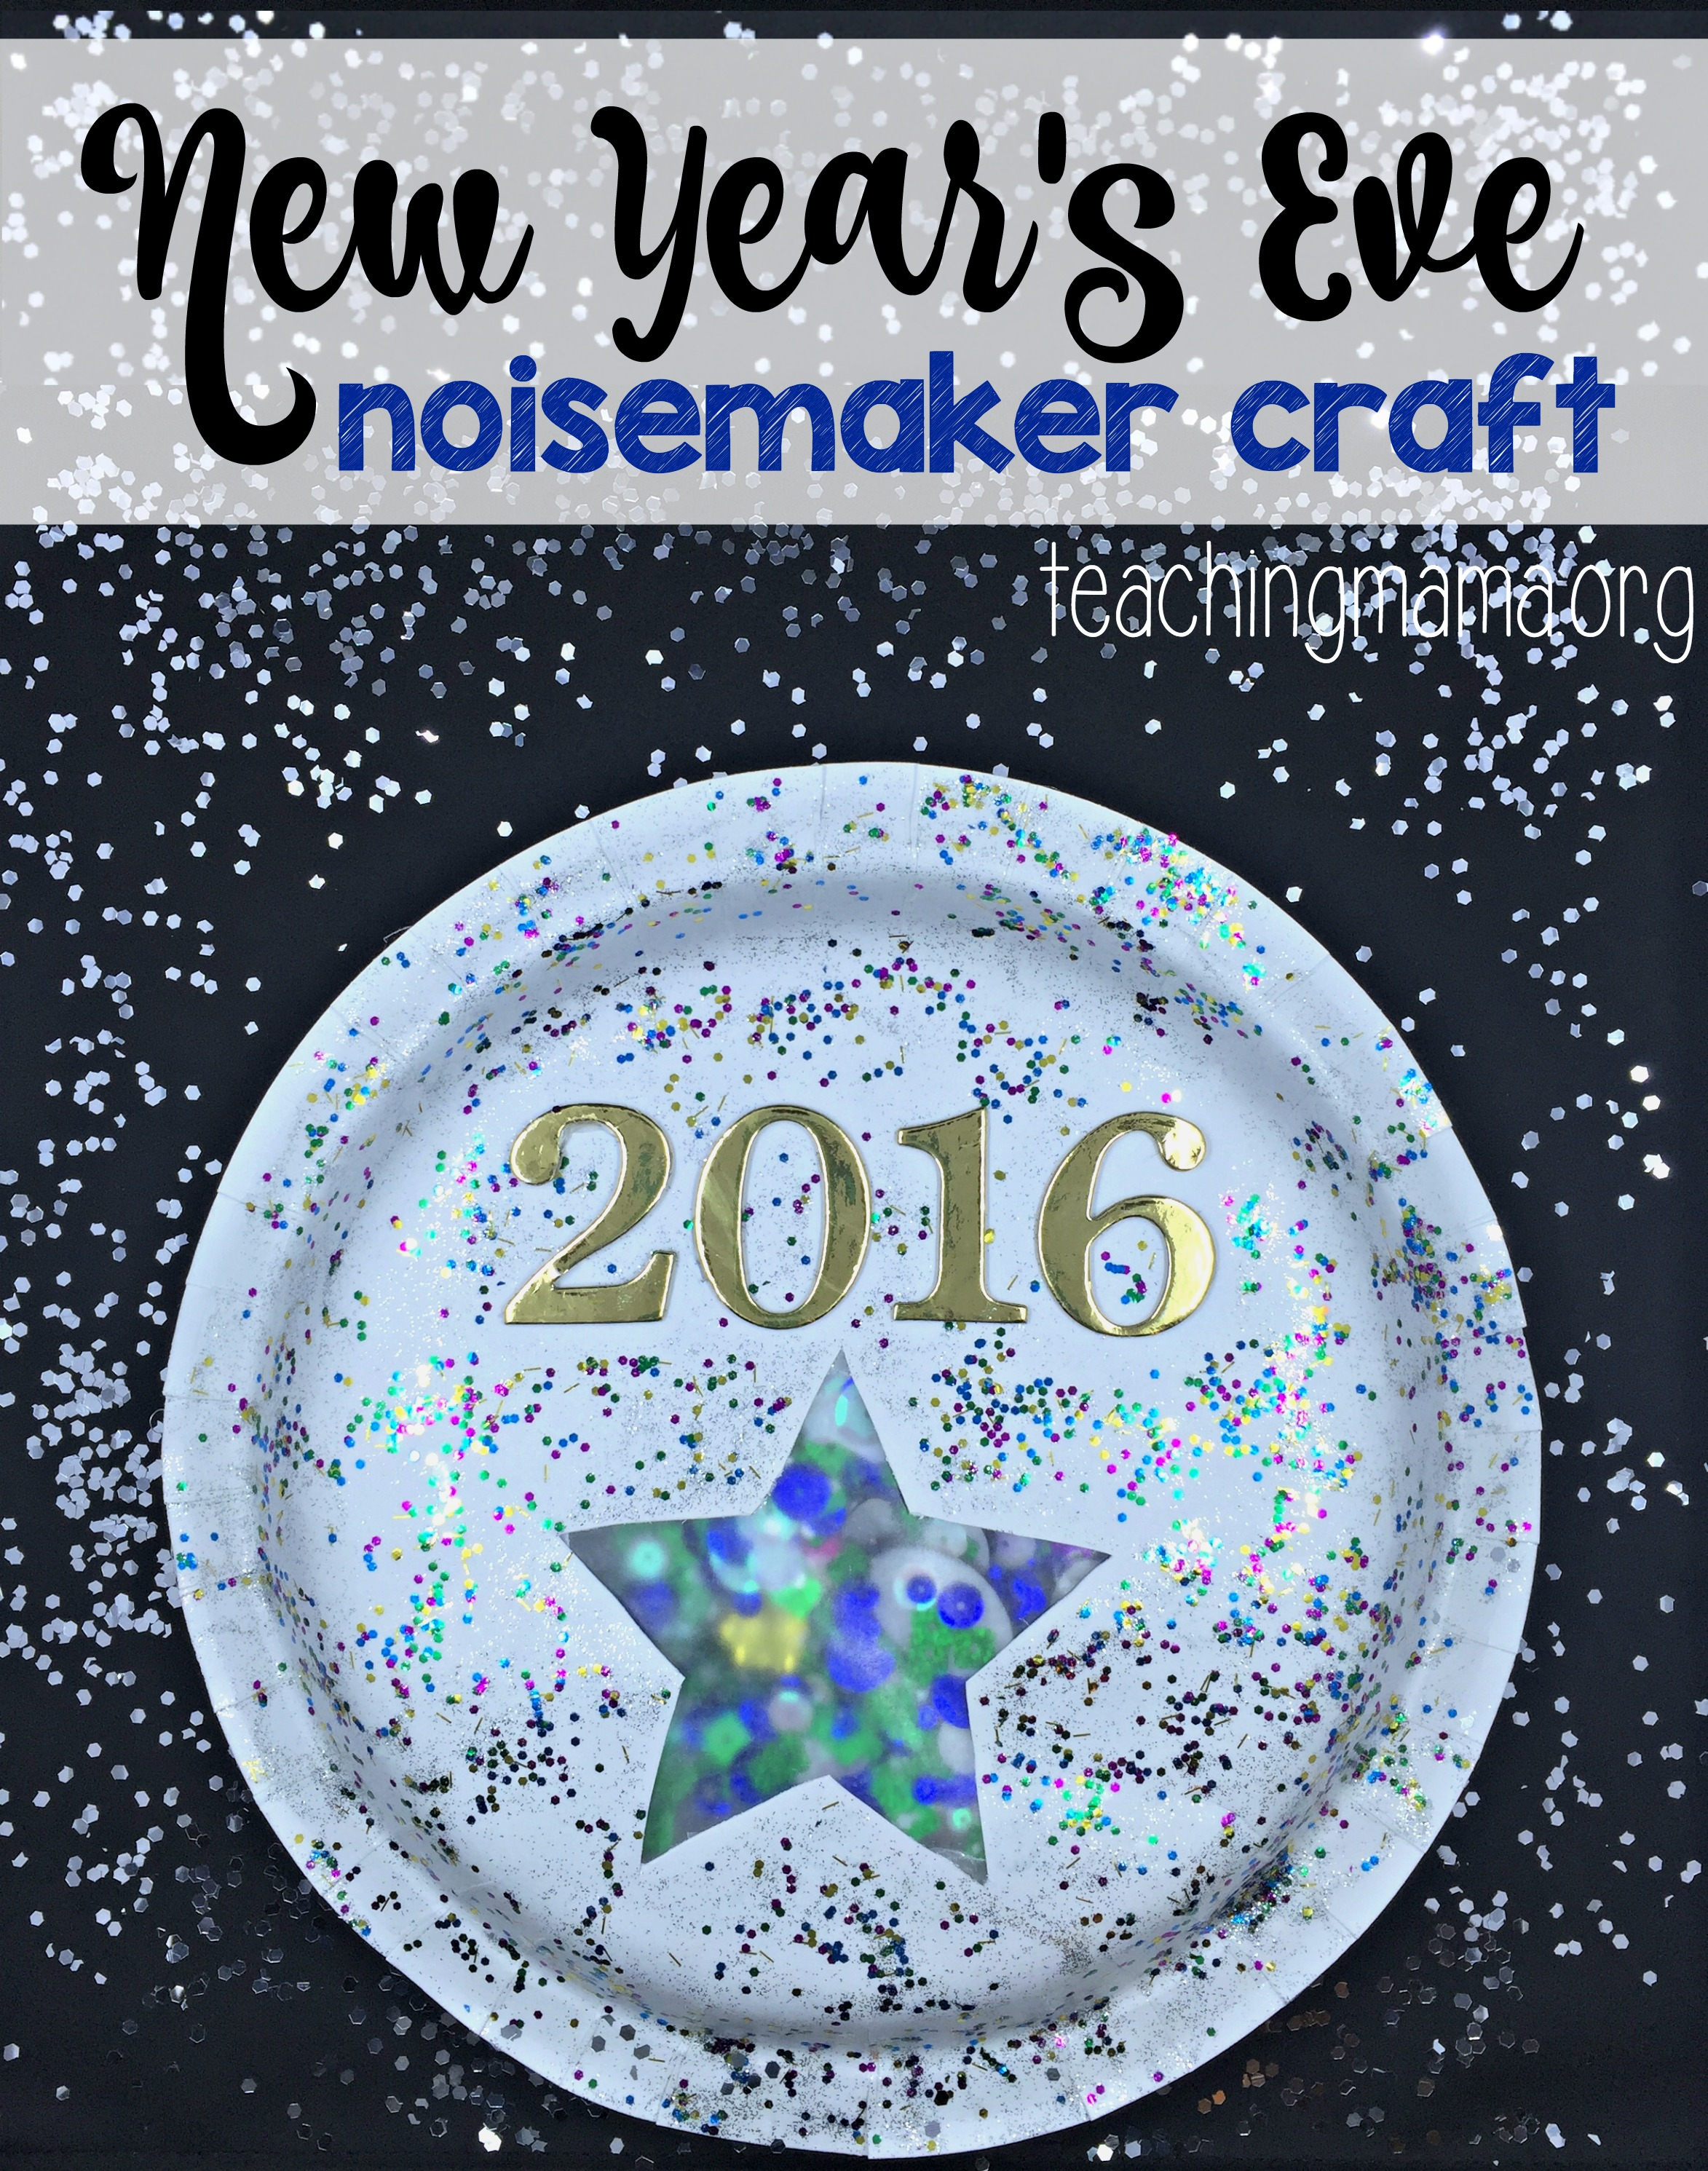 New Years Time Capsule Printable Questionnaire For Kids: New Year's Eve Noisemaker Craft